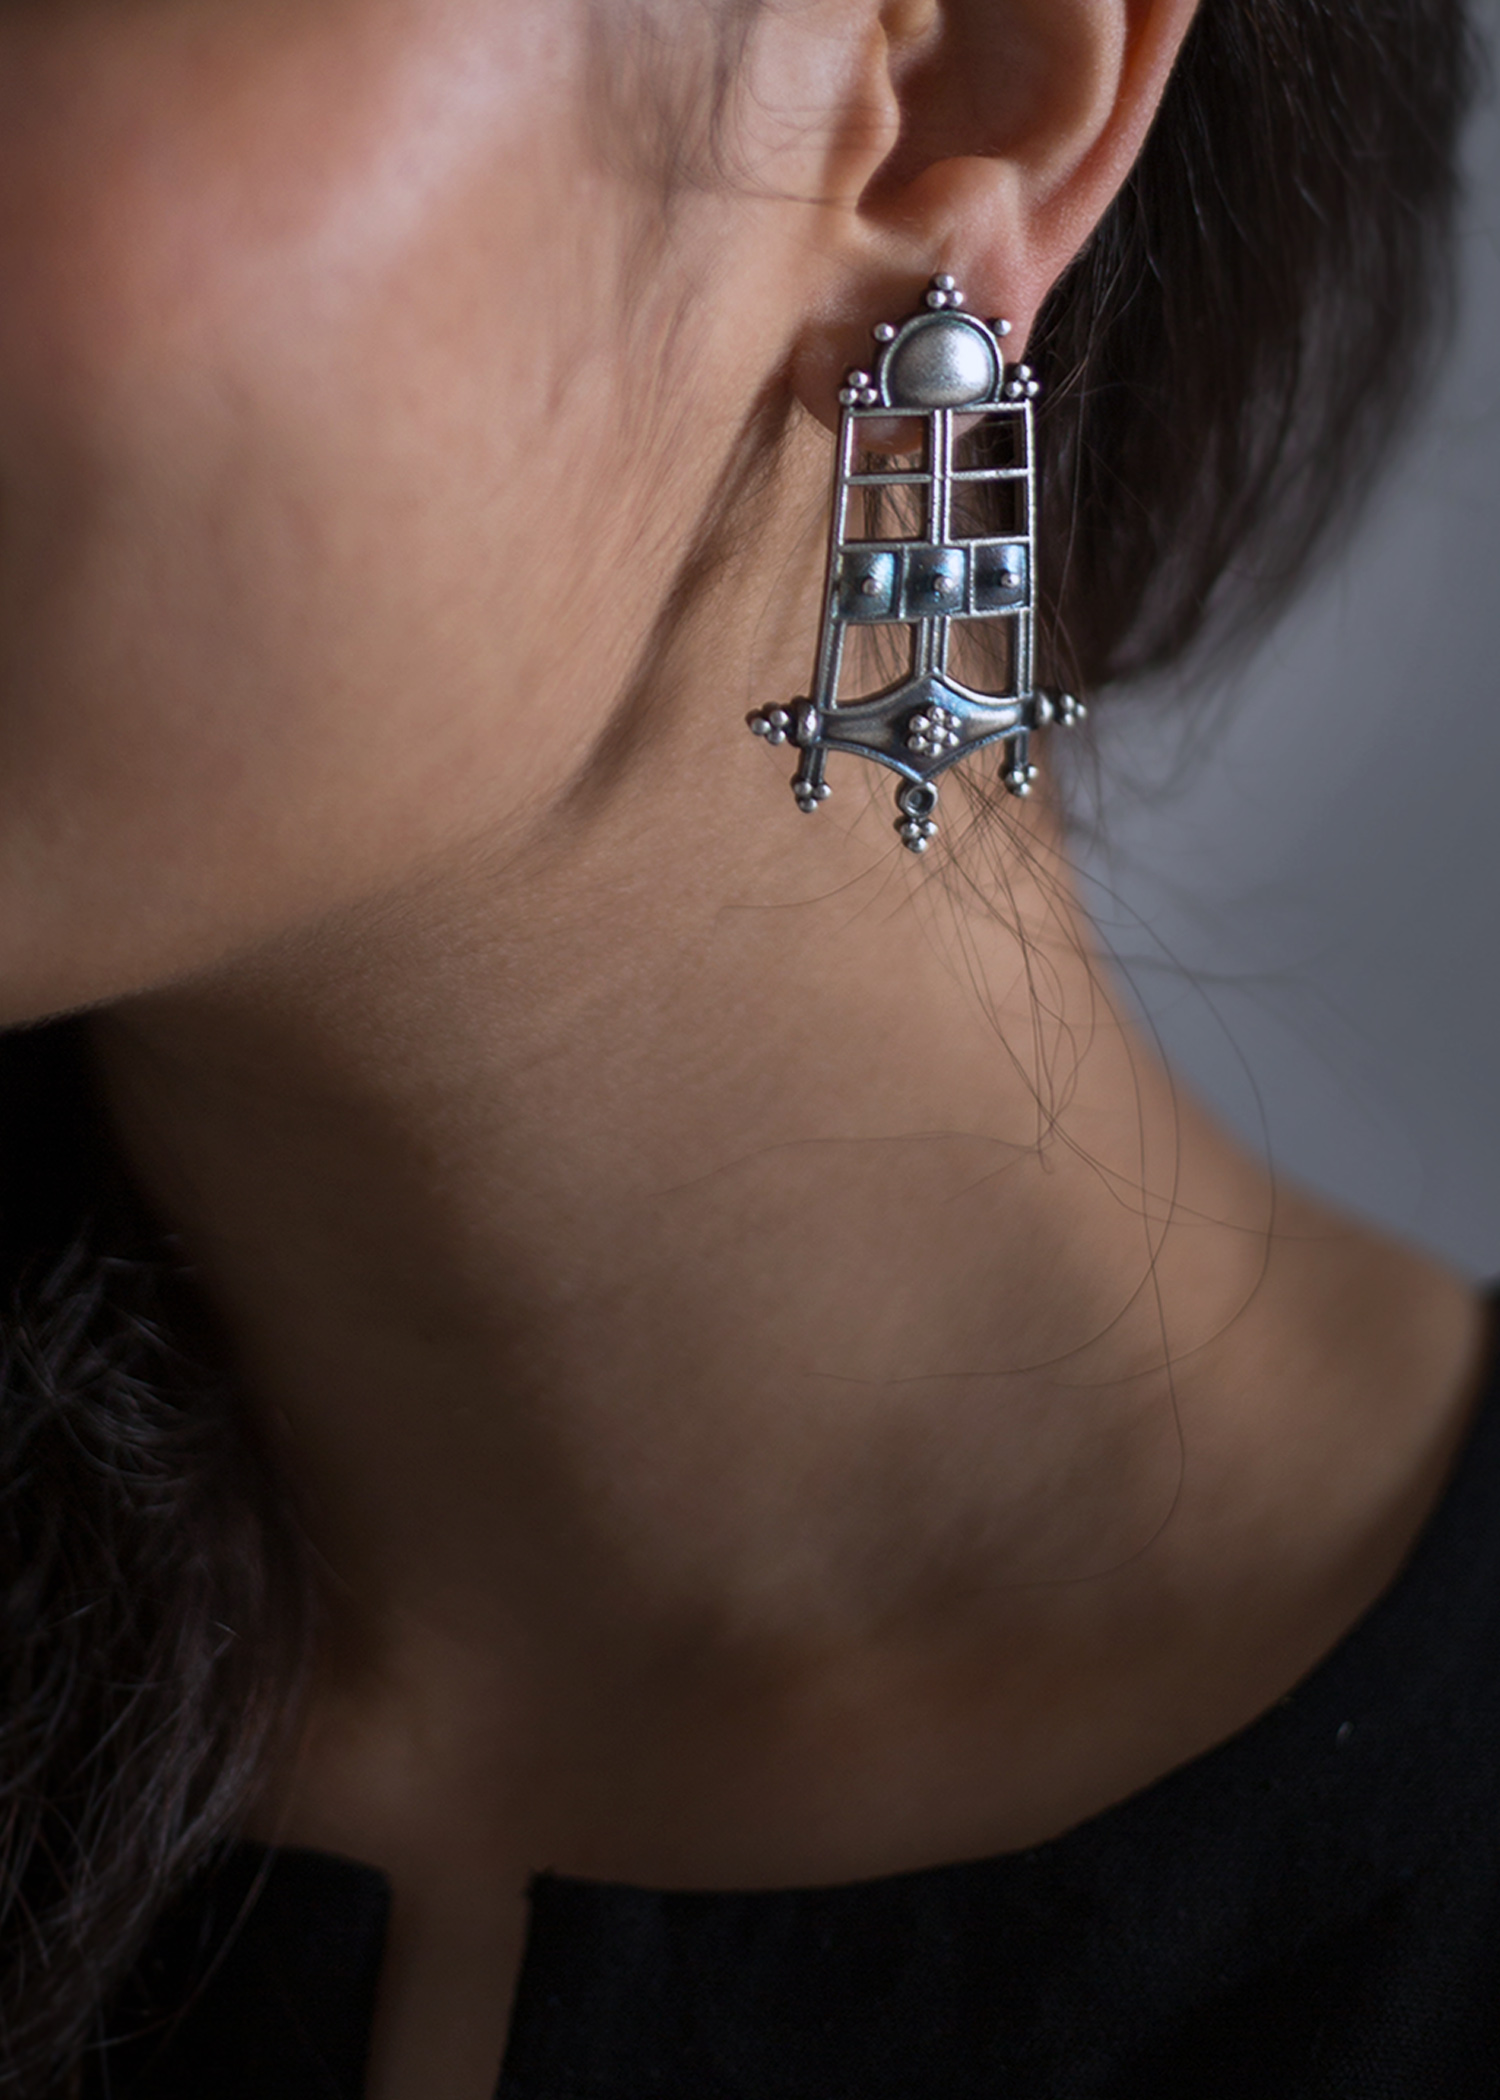 catalog/EARRINGS/3 closeup.jpg